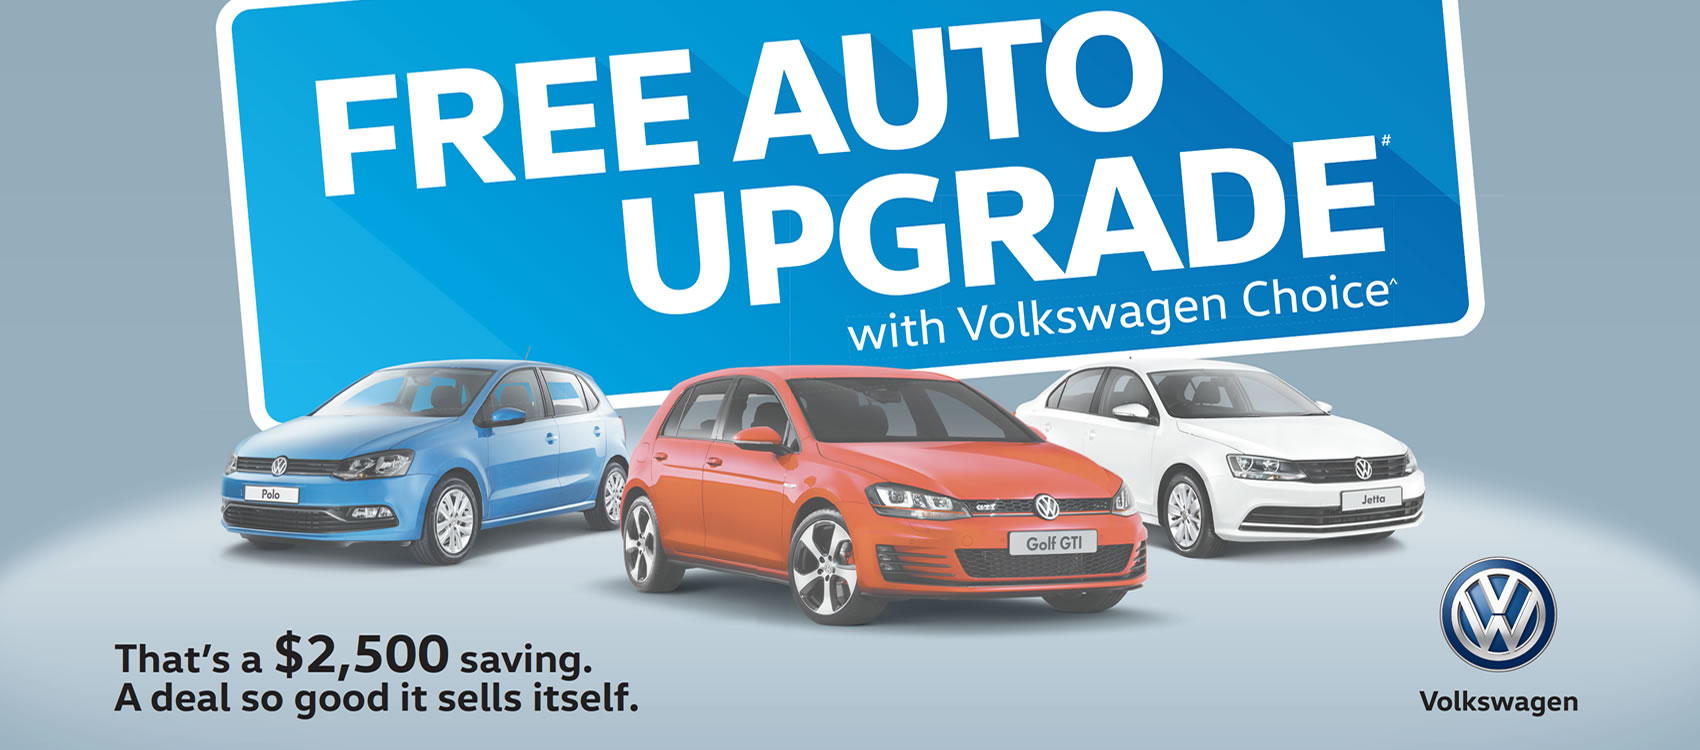 Free Auto Upgrade with Volkswagen Choice, that's a $2500 saving!